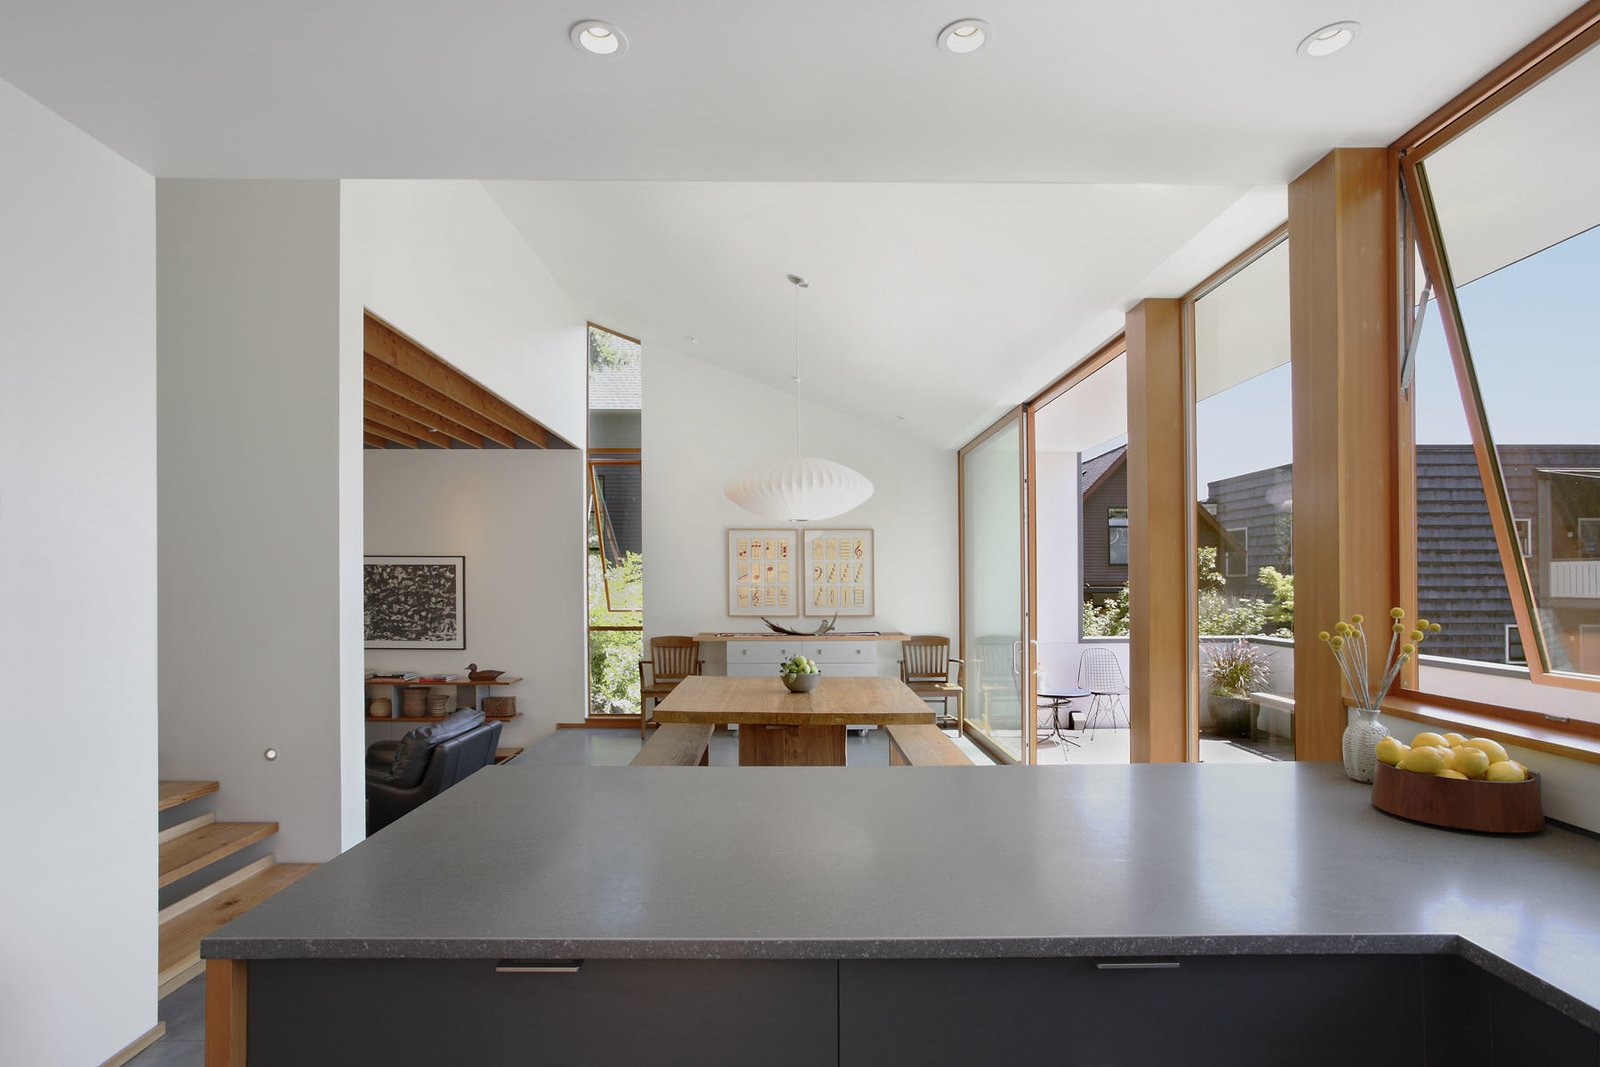 """A George Nelson Saucer Pendant hangs over the table. Behind it, a vertical slot window frames a Douglas fir tree while editing out the windows of a nearby town house. """"All the openings were composed in direct response to appealing fragments of the site and to avoid relationships that would leave the owners feeling exposed,"""" Schaer says."""